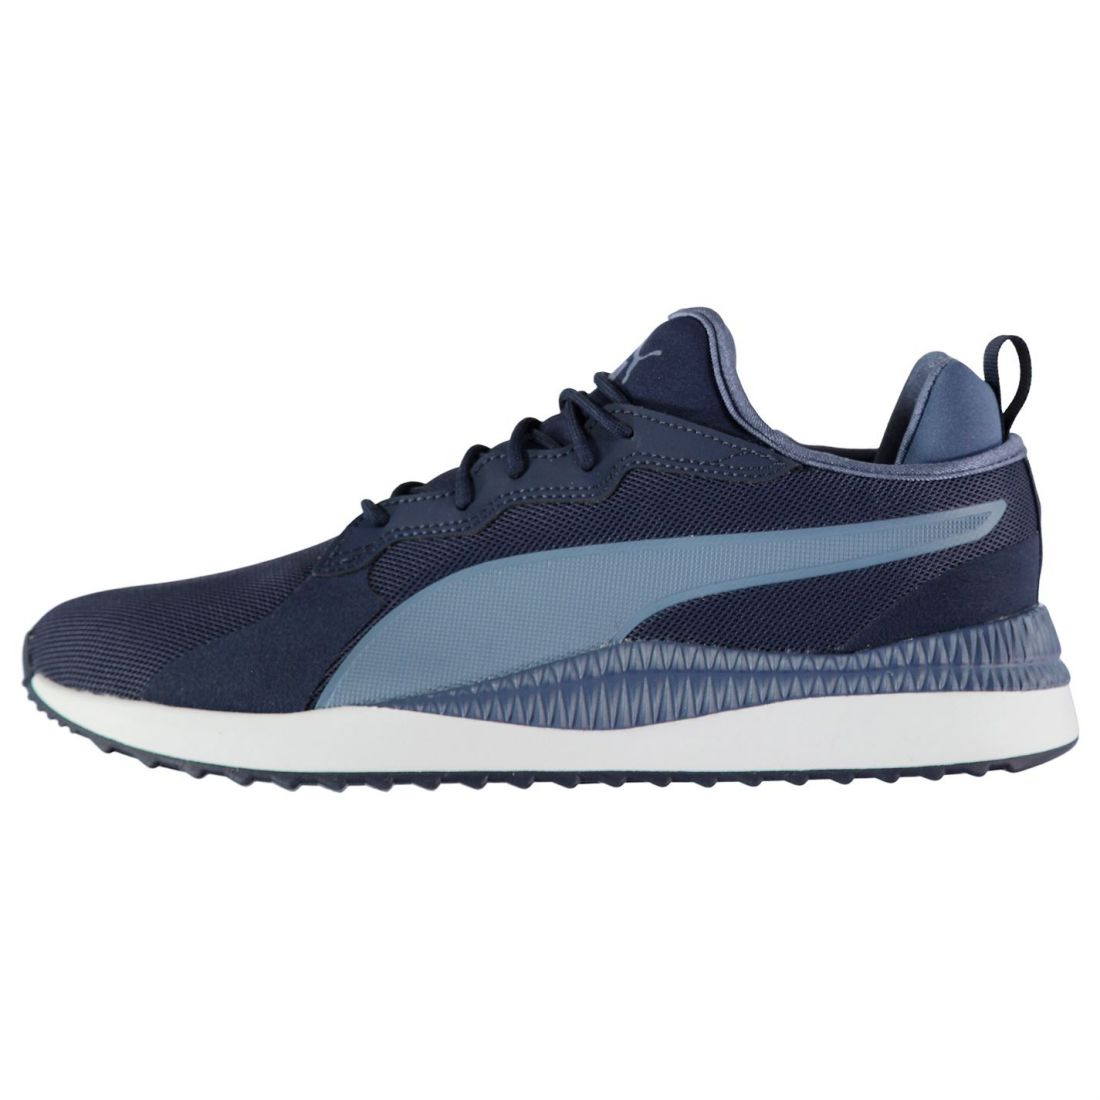 Puma Mens Pacer Next Trainers Sports zapatos Lace Up Breathable Lightweight Knit